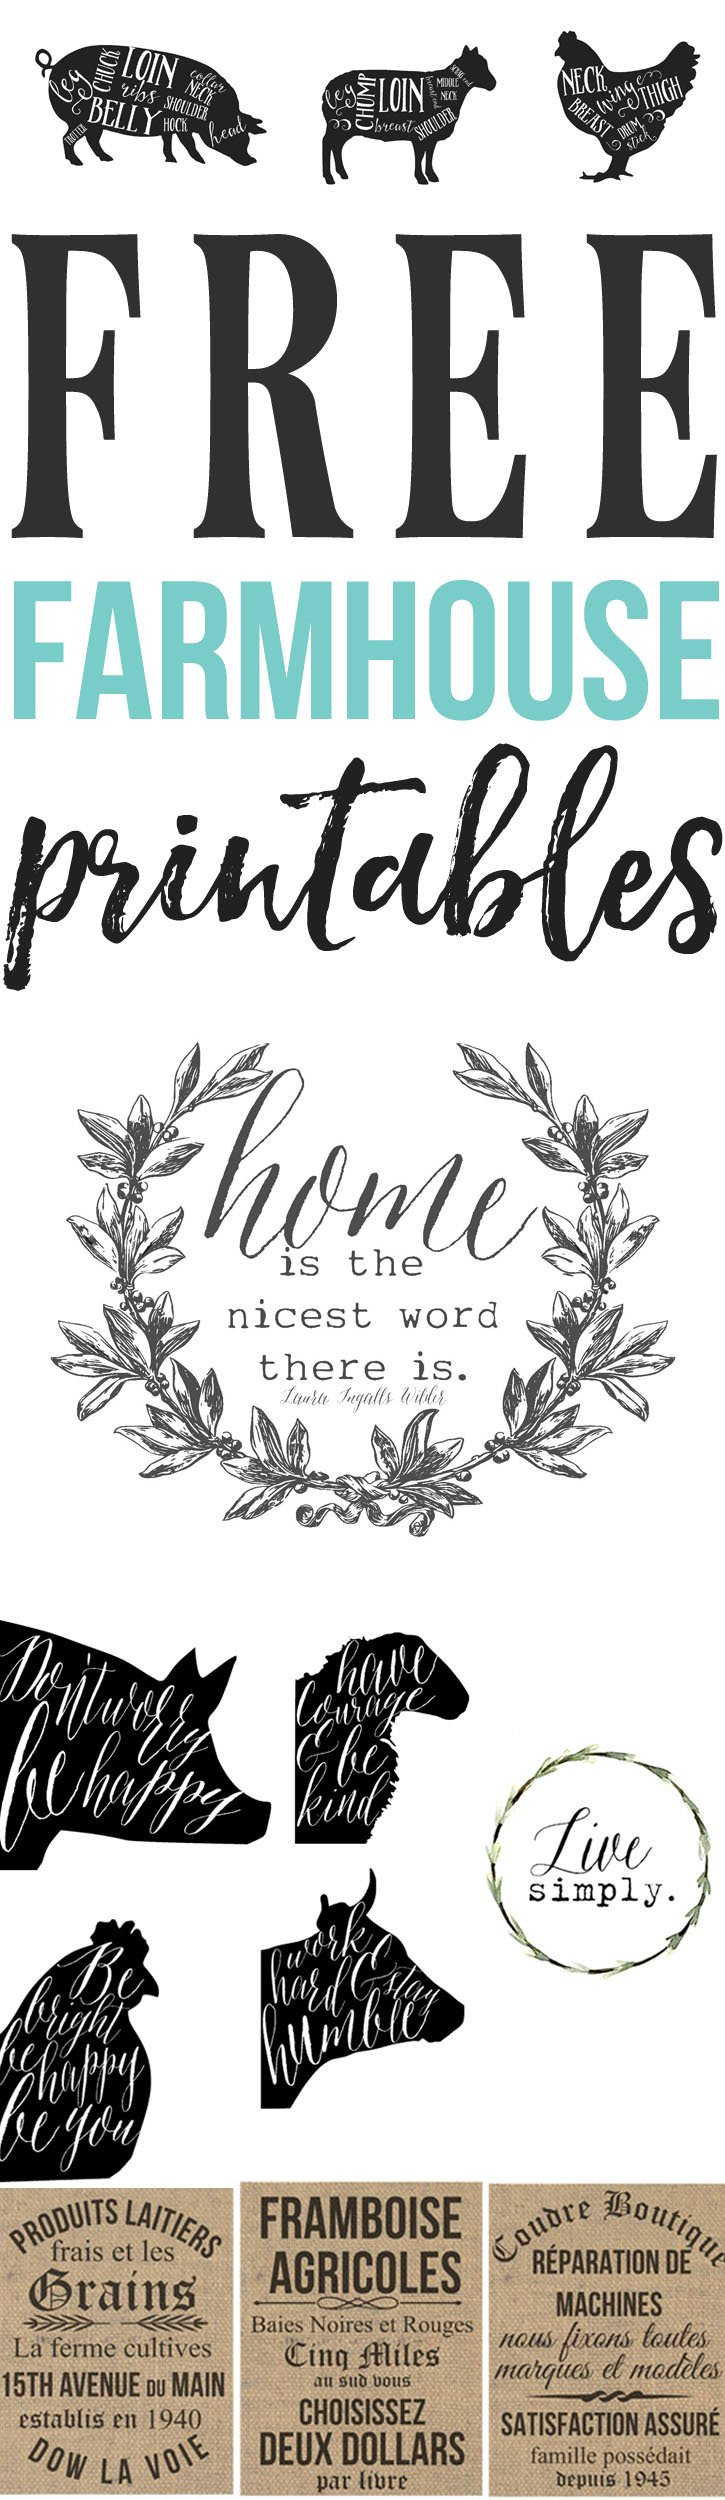 dining room printable art. Free Farmhouse Printables Dining Room Printable Art